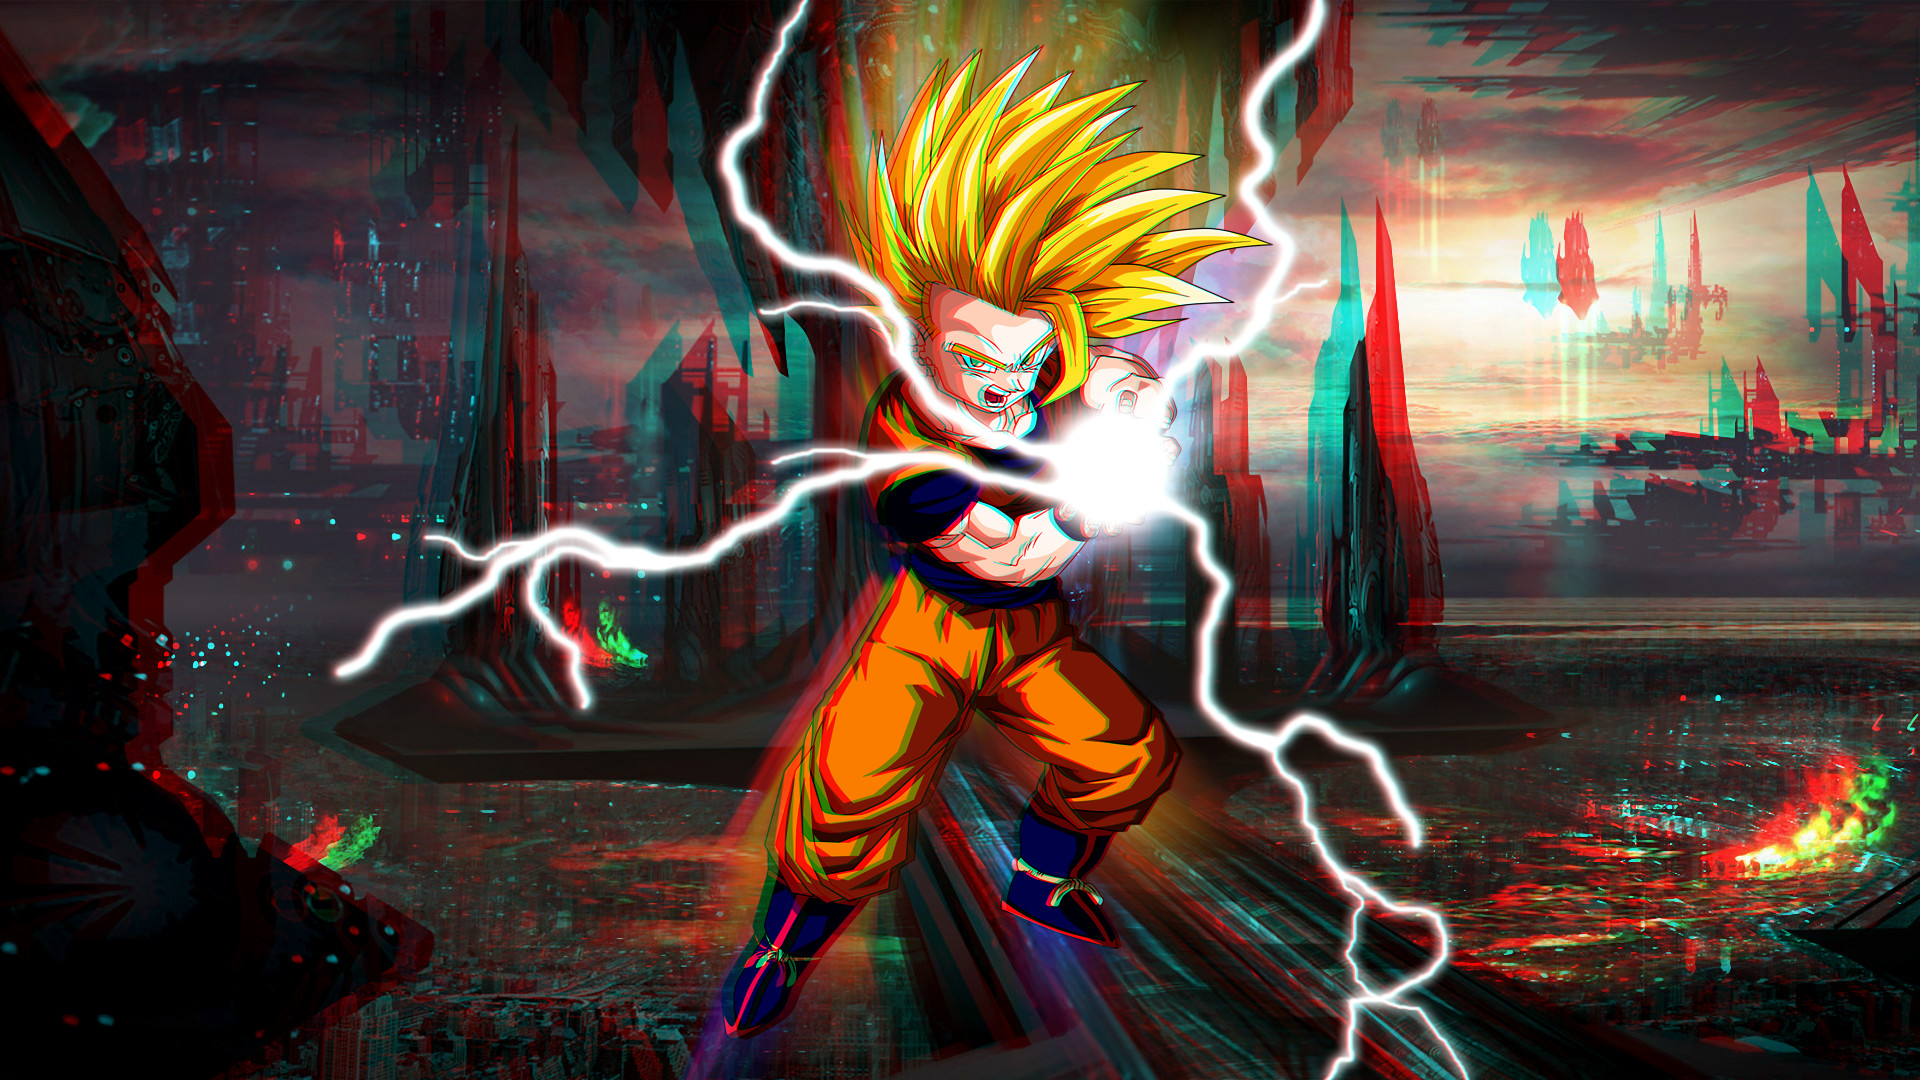 Dbz wallpaper goku 65 images - 3d wallpaper of dragon ball z ...